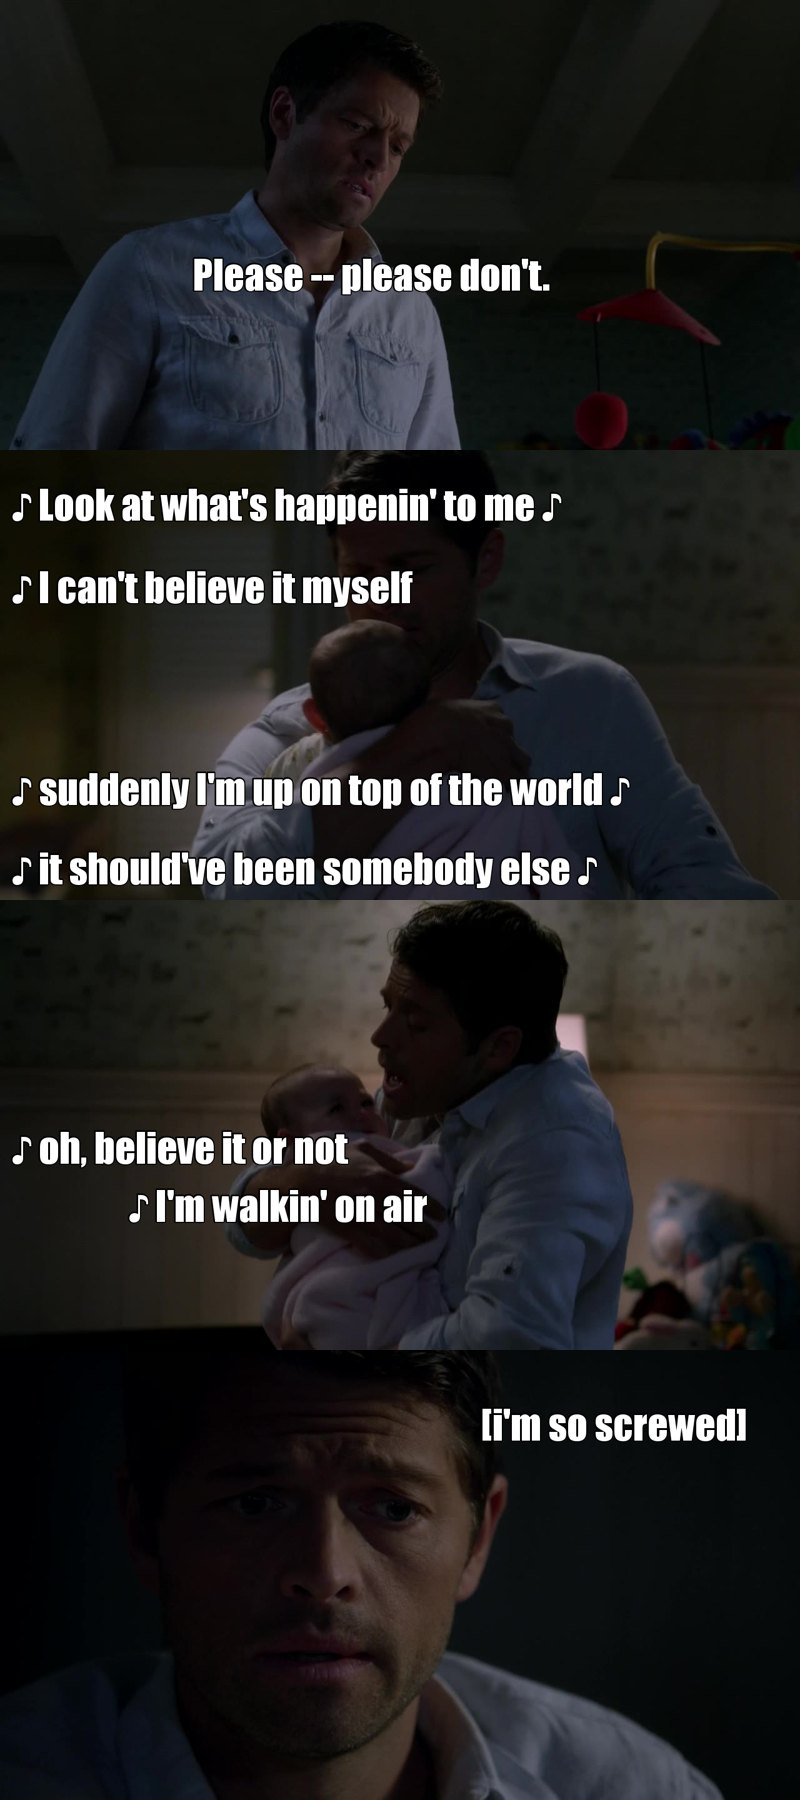 Cas beeing a human is so funny and Sad !!!! how does it even possible?😓😓😓 Poor angel 😥 ain't easy being a human Huh Cas? 😔